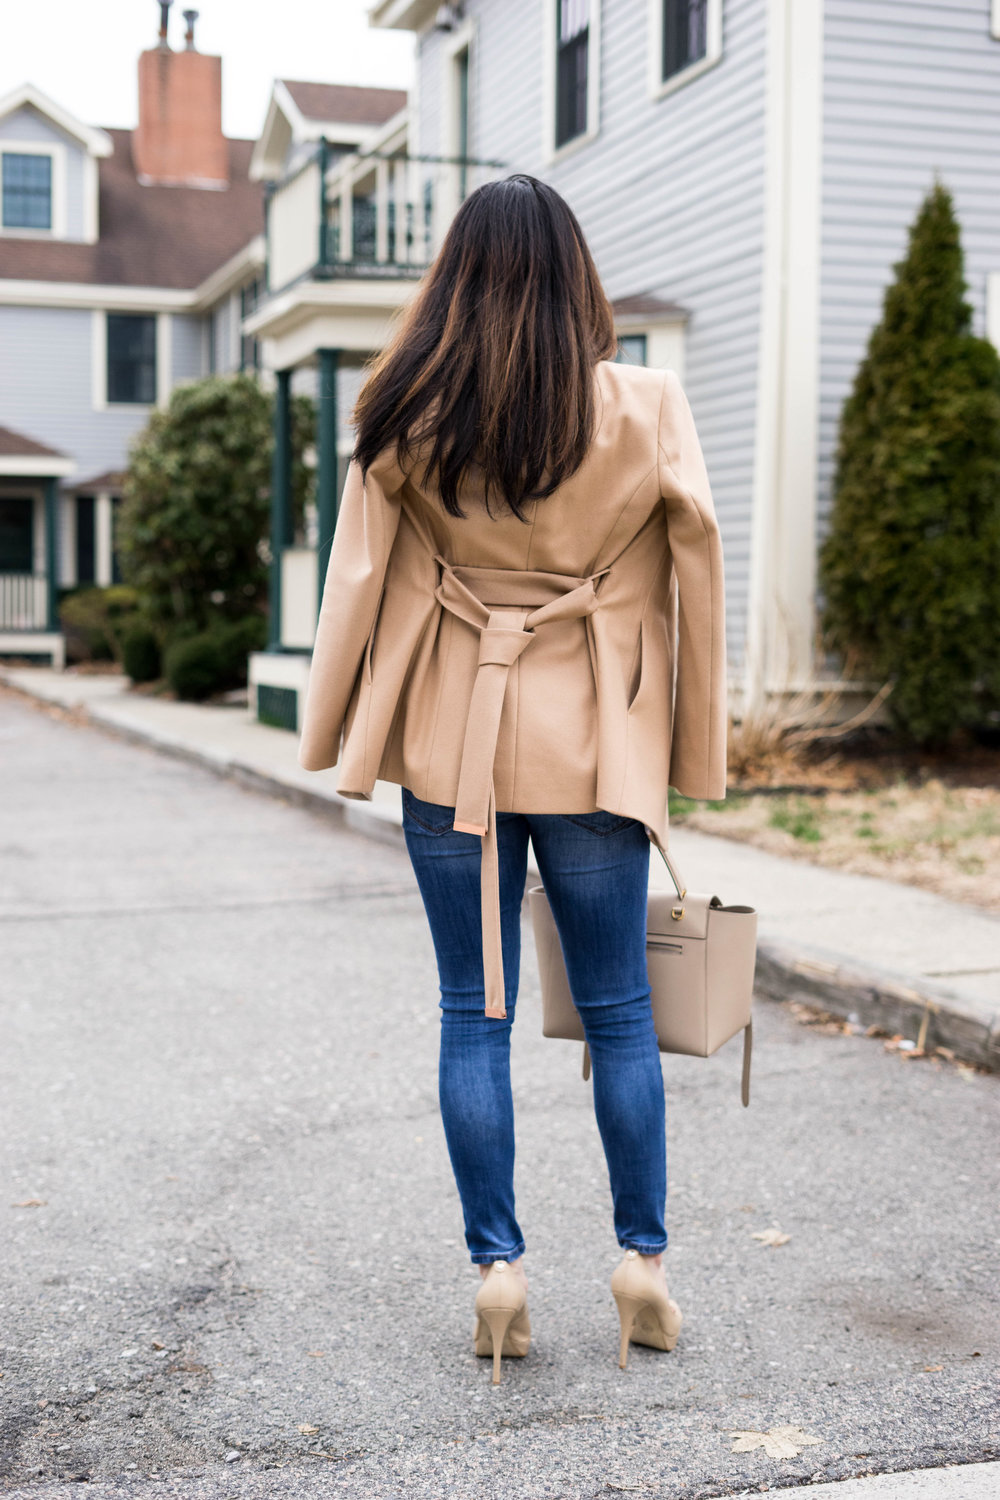 Look More Expensive with A Coat - Ted Baker Coat in Camel - TheNinesBlog.com